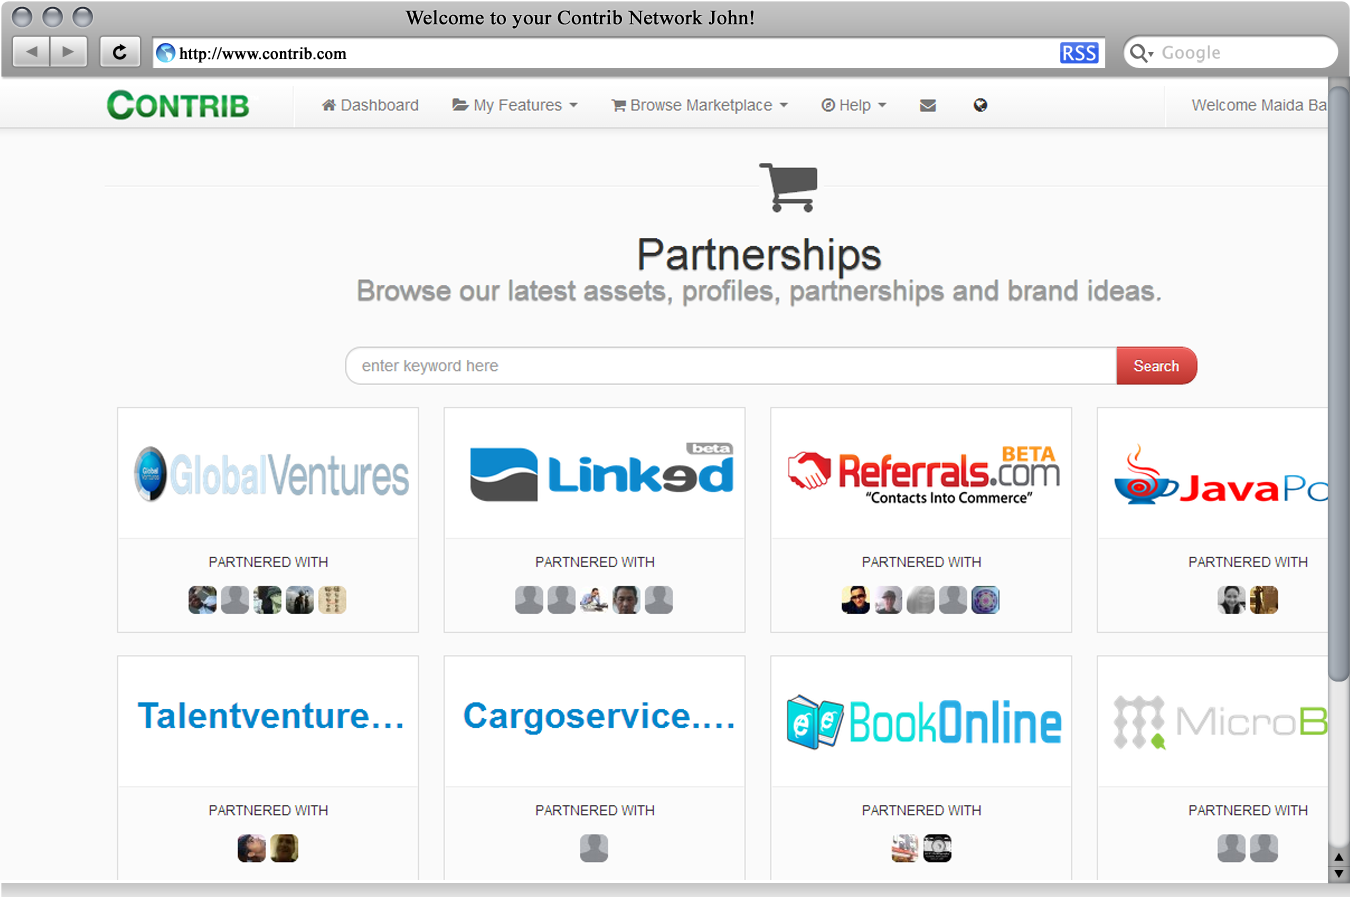 Partnership marketplace